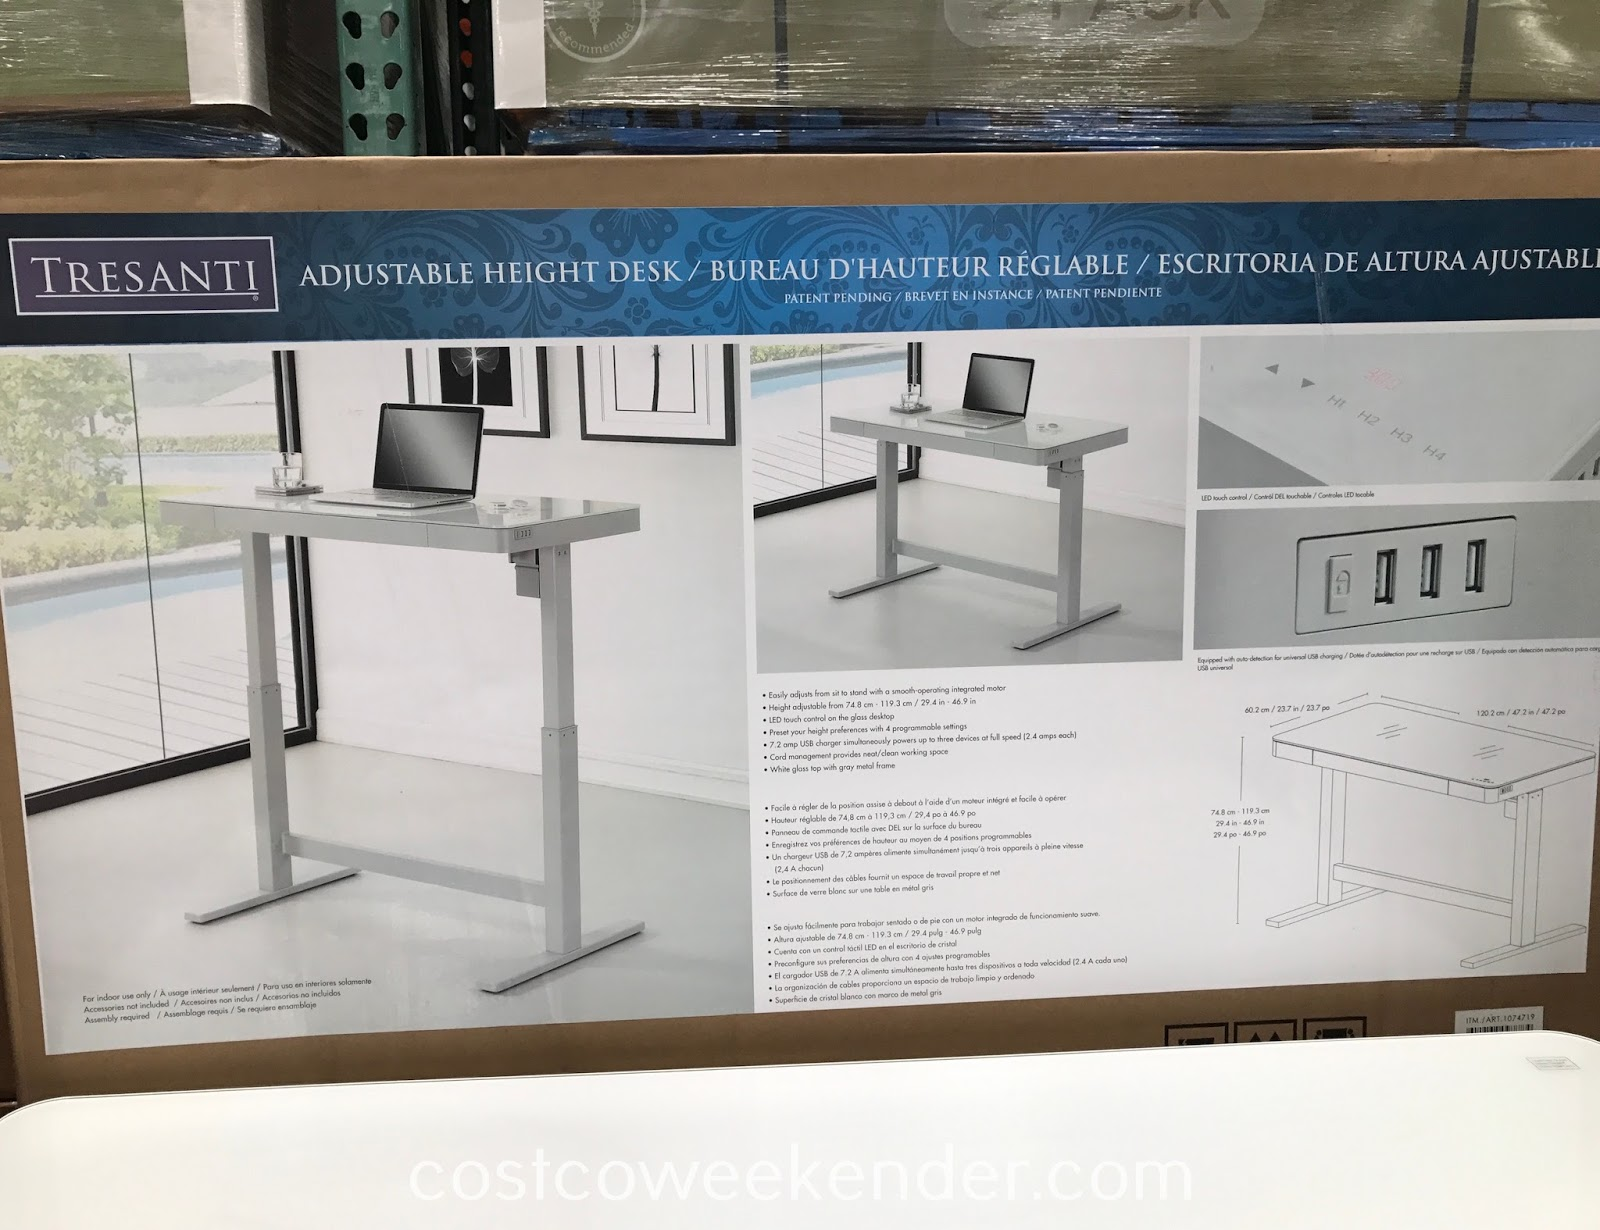 Costco 1074719 - Tresanti Nouveau Adjustable Height Desk: great for any office